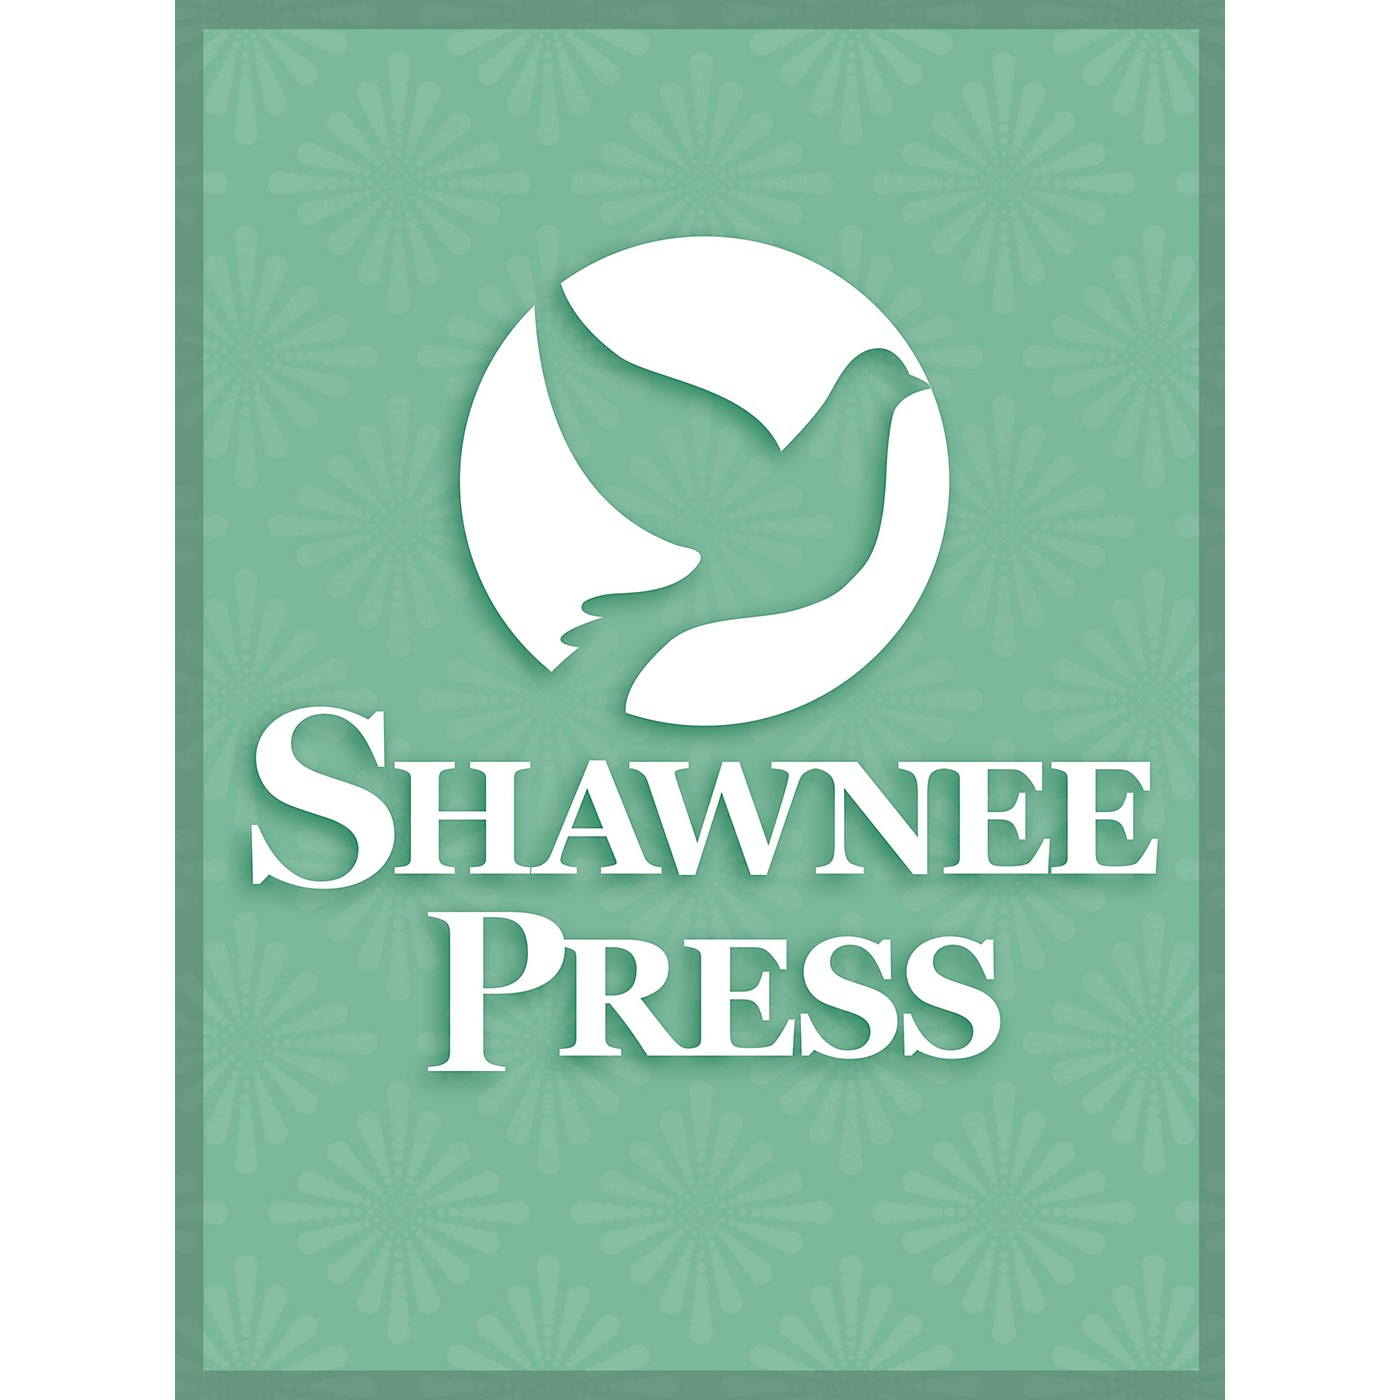 Shawnee Press Te Deum (Chamber Orchestration) Chamber Orchestra Composed by Mark Hayes thumbnail